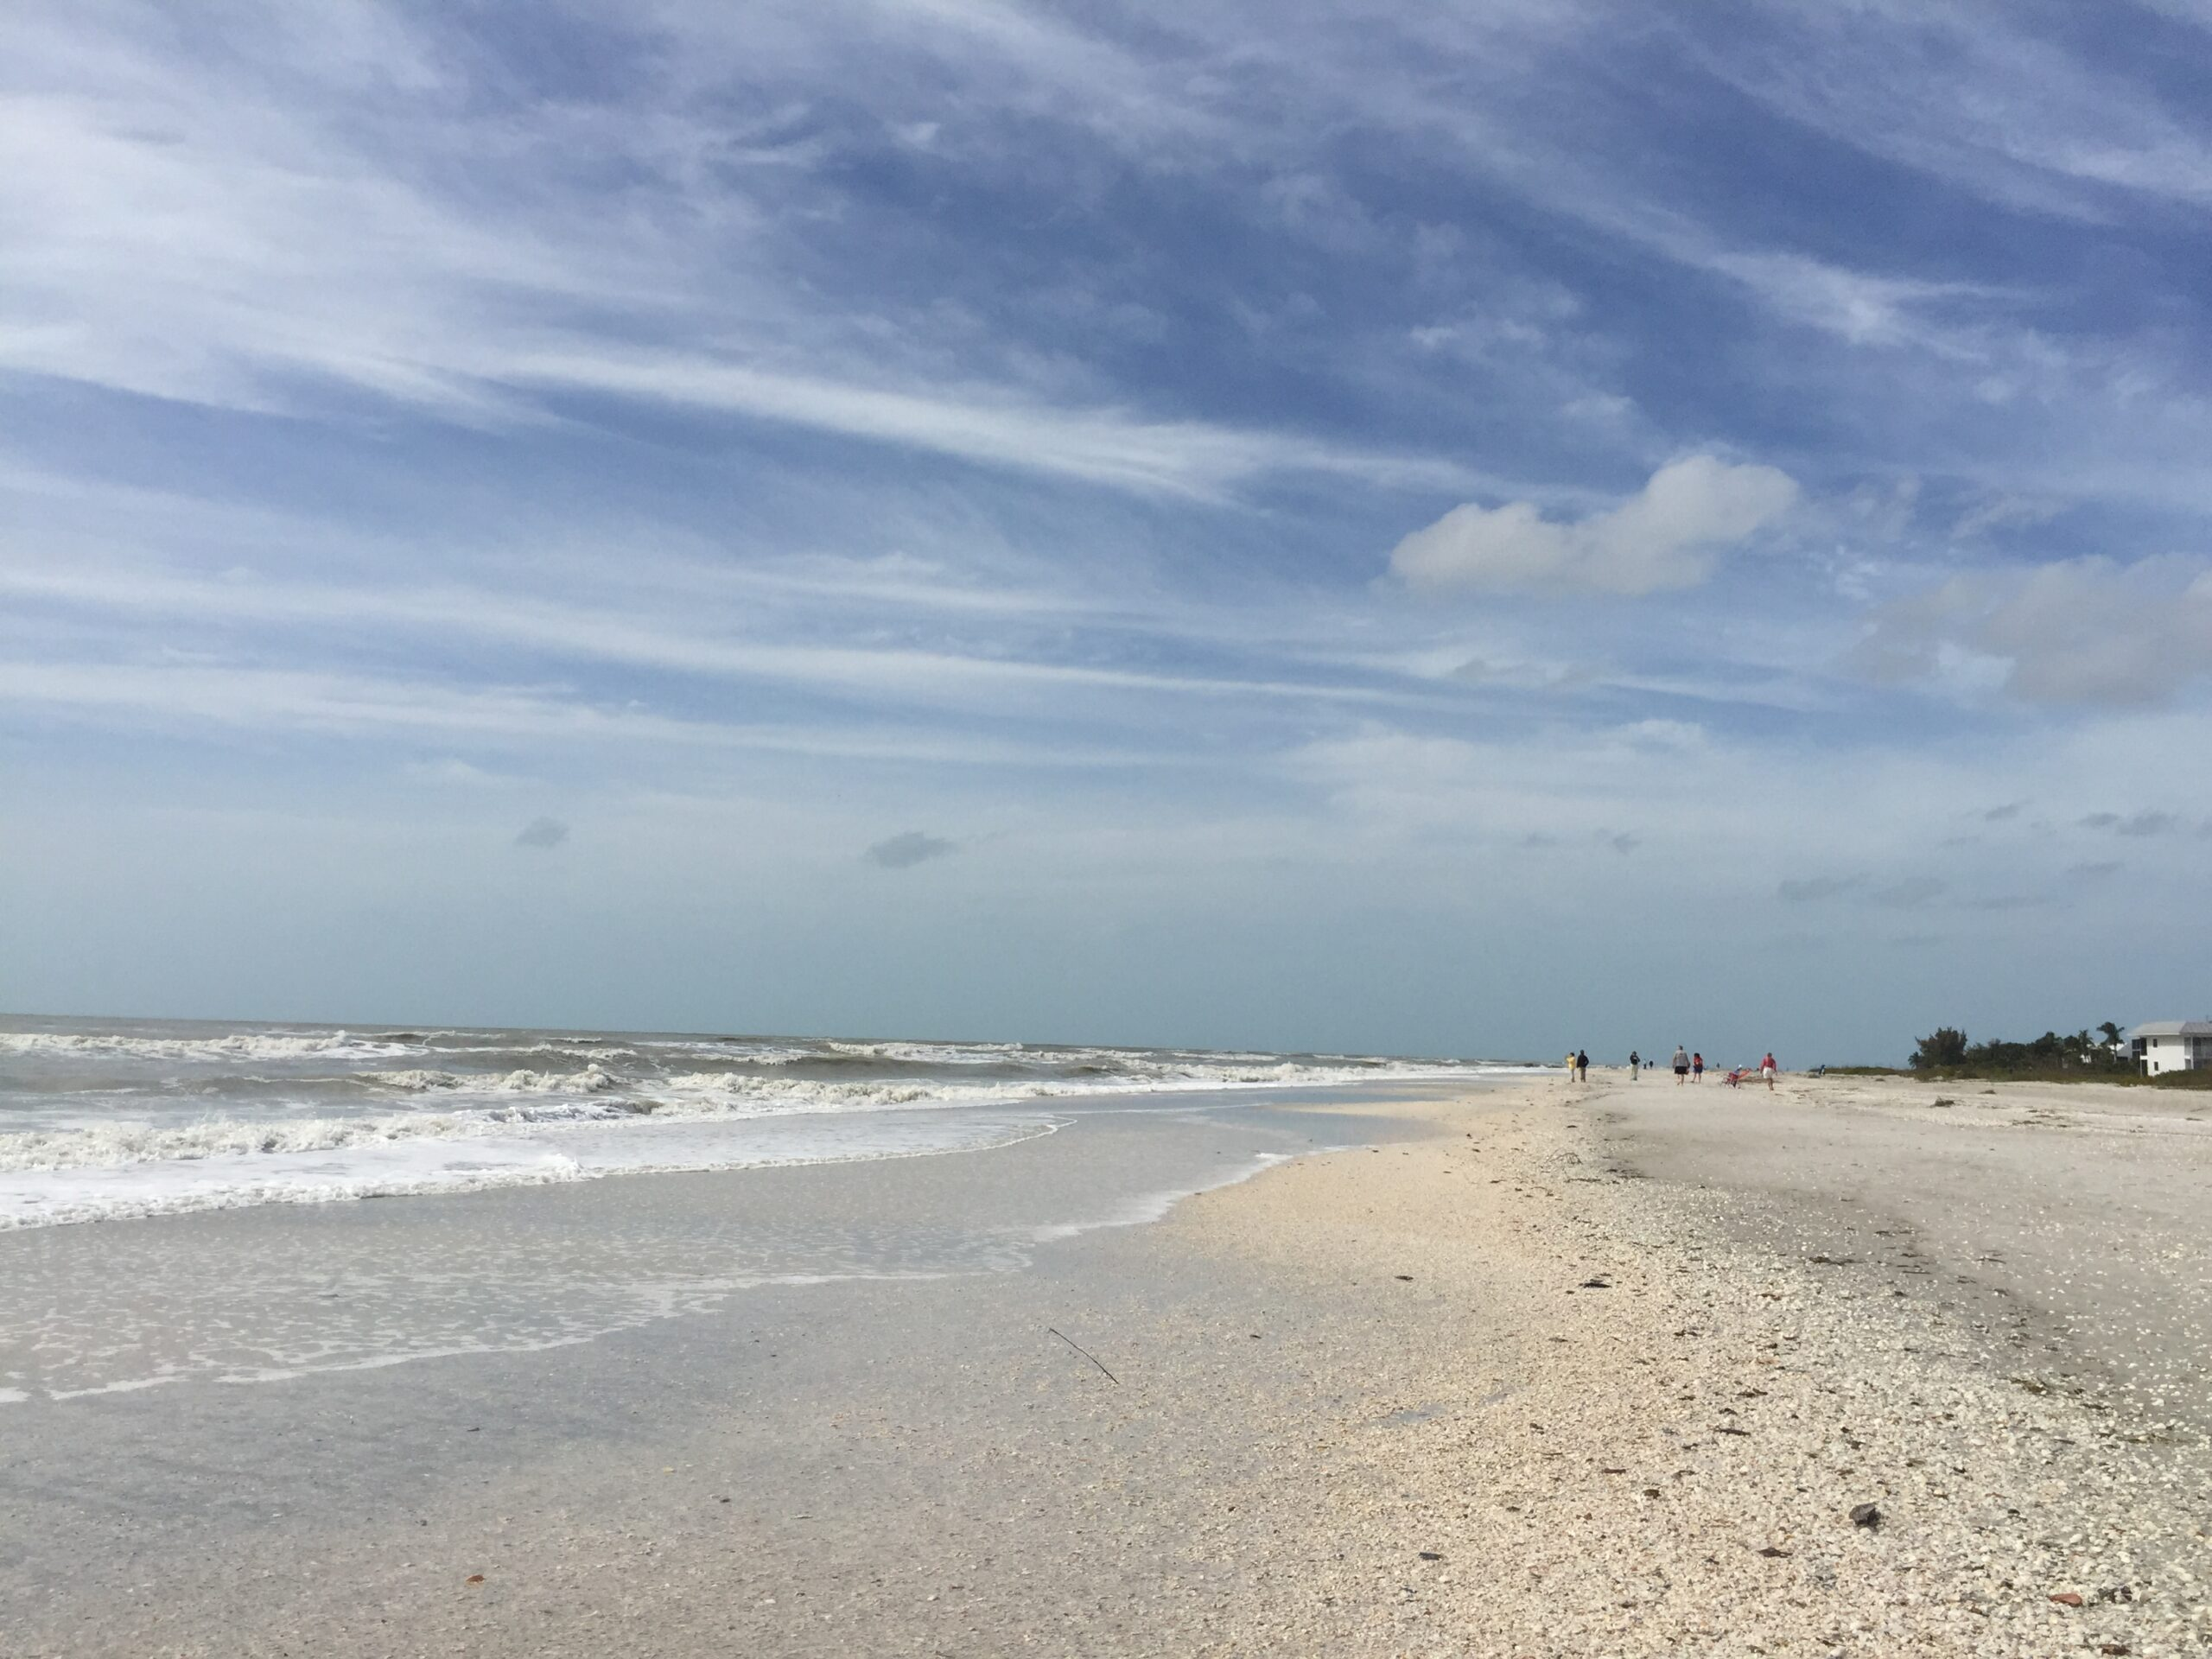 Tarpon Bay Beach on Sanibel Island, Florida